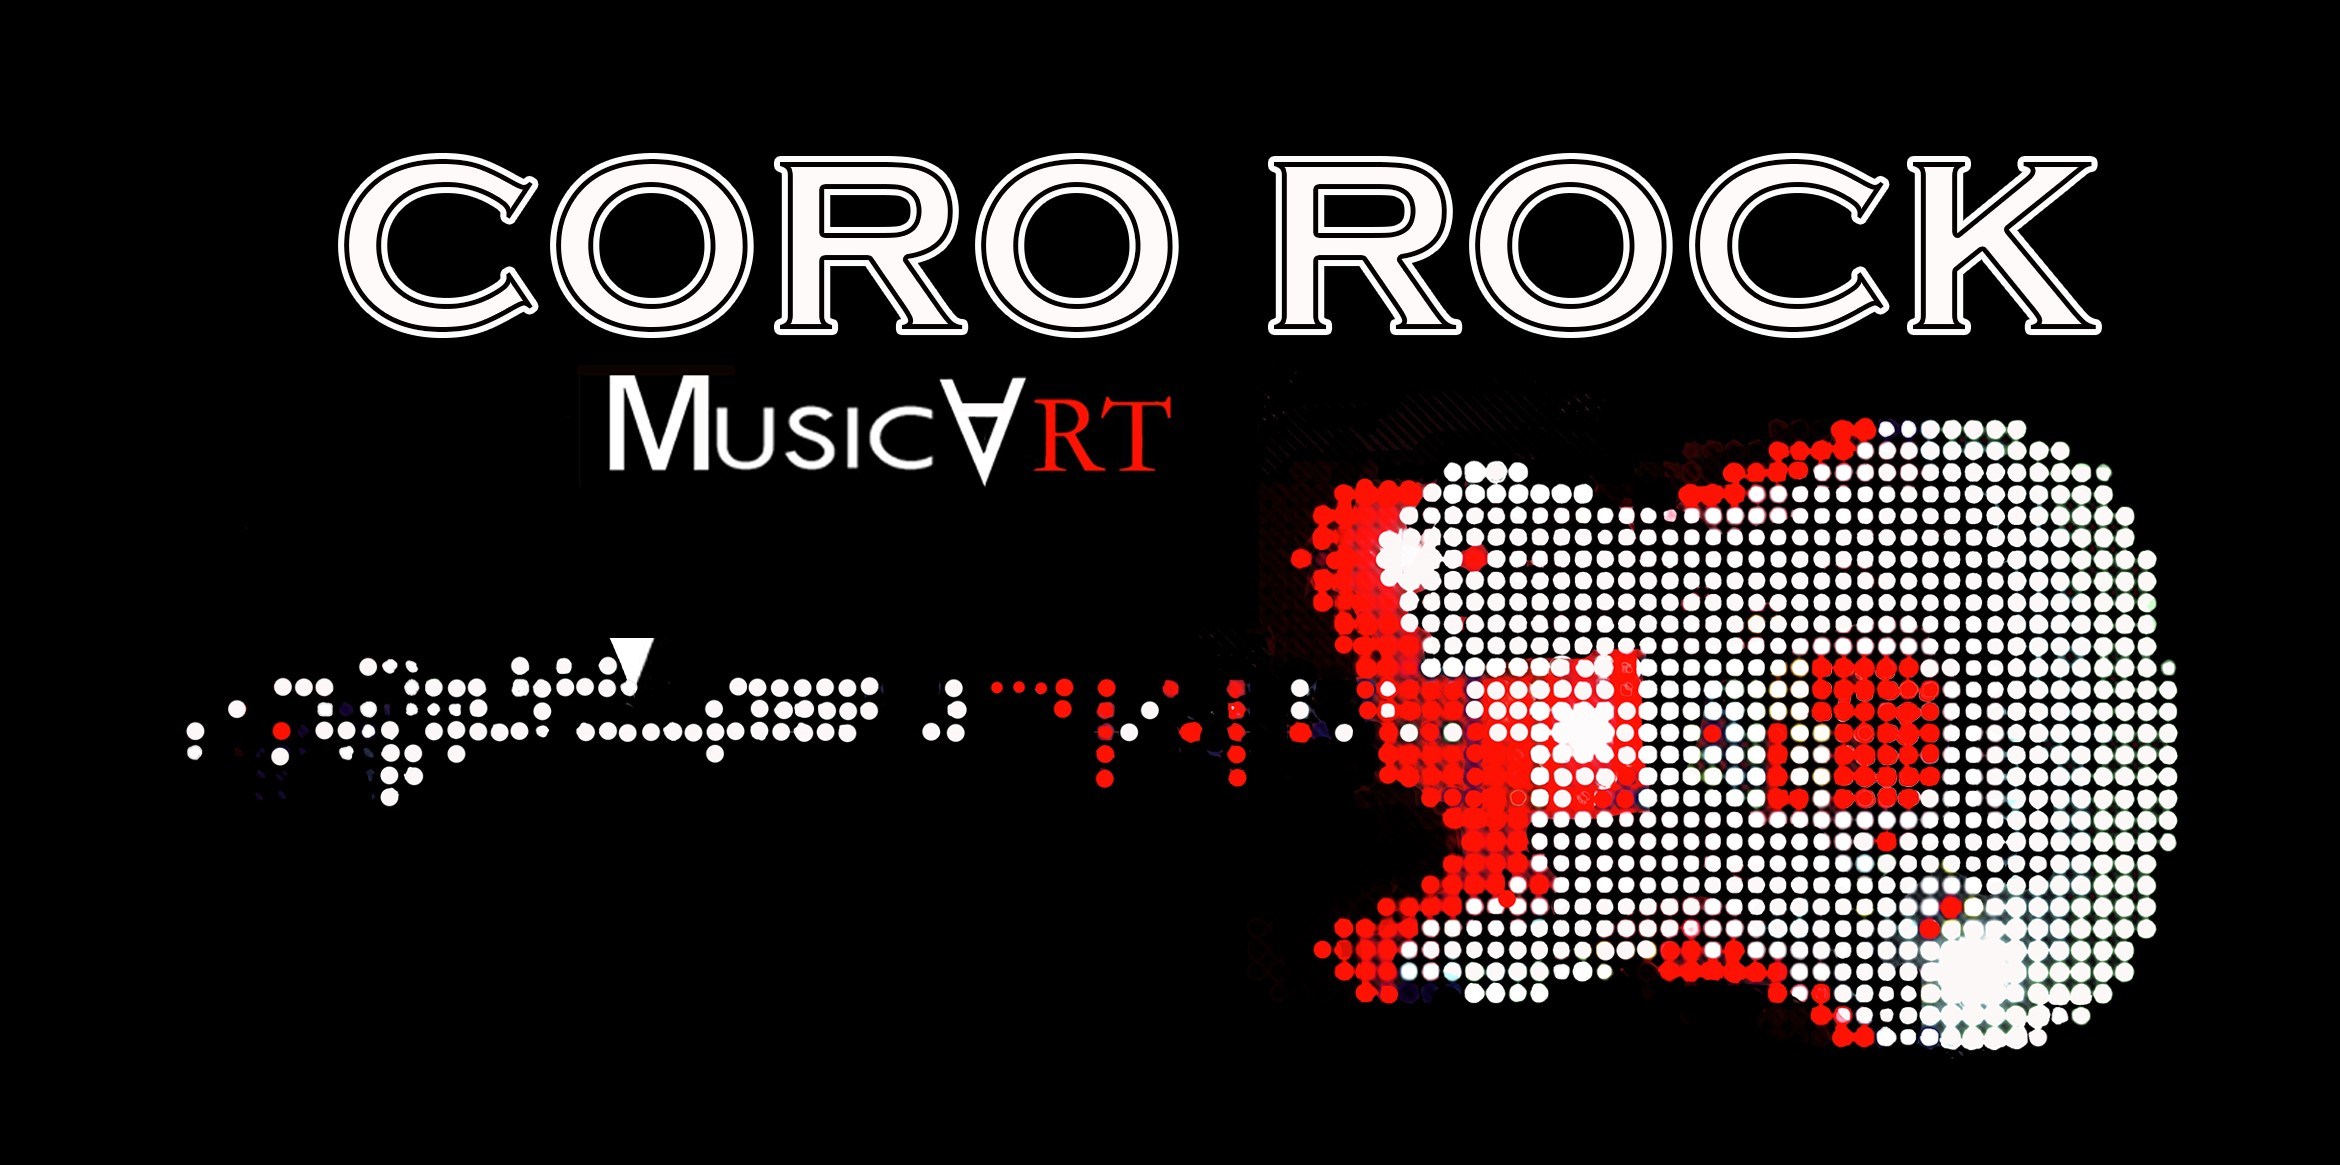 Coro Rock clipped